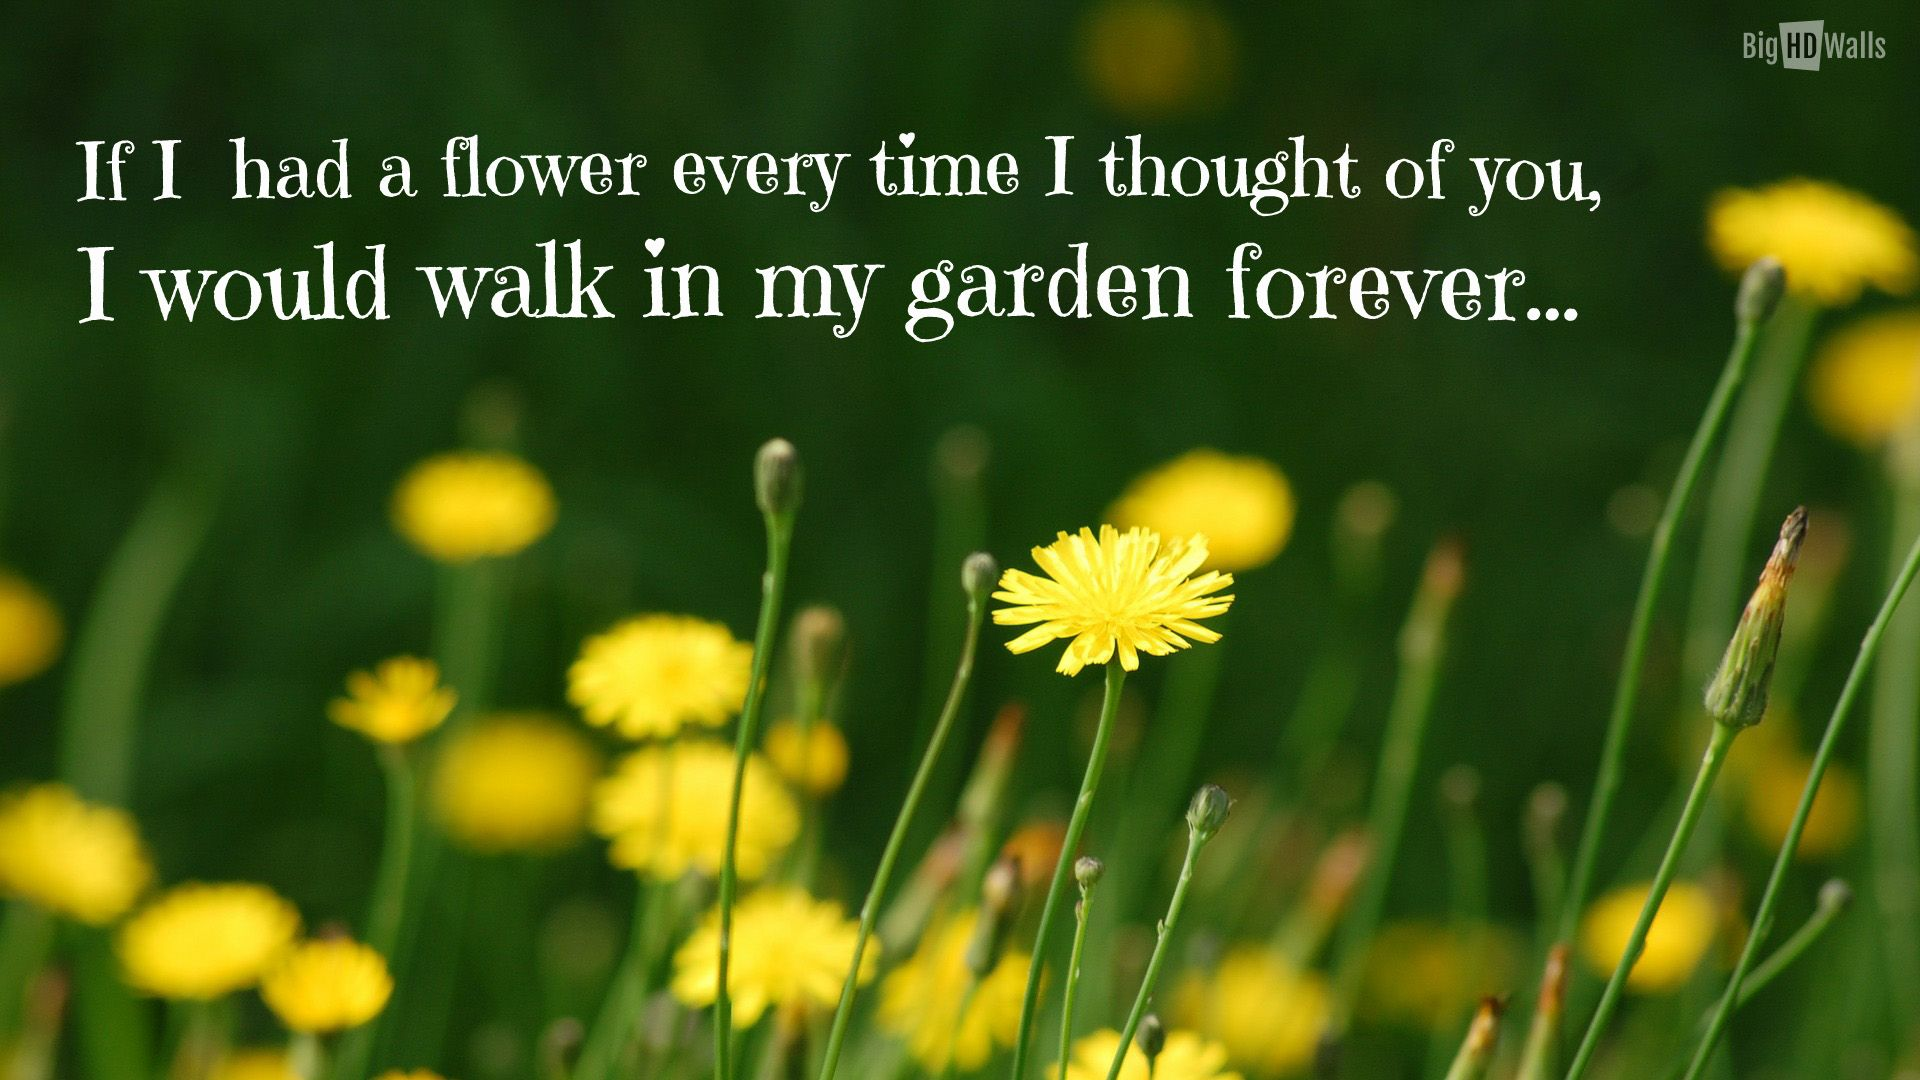 Flower Quotes About Life Google Search Flower Quote Pinterest